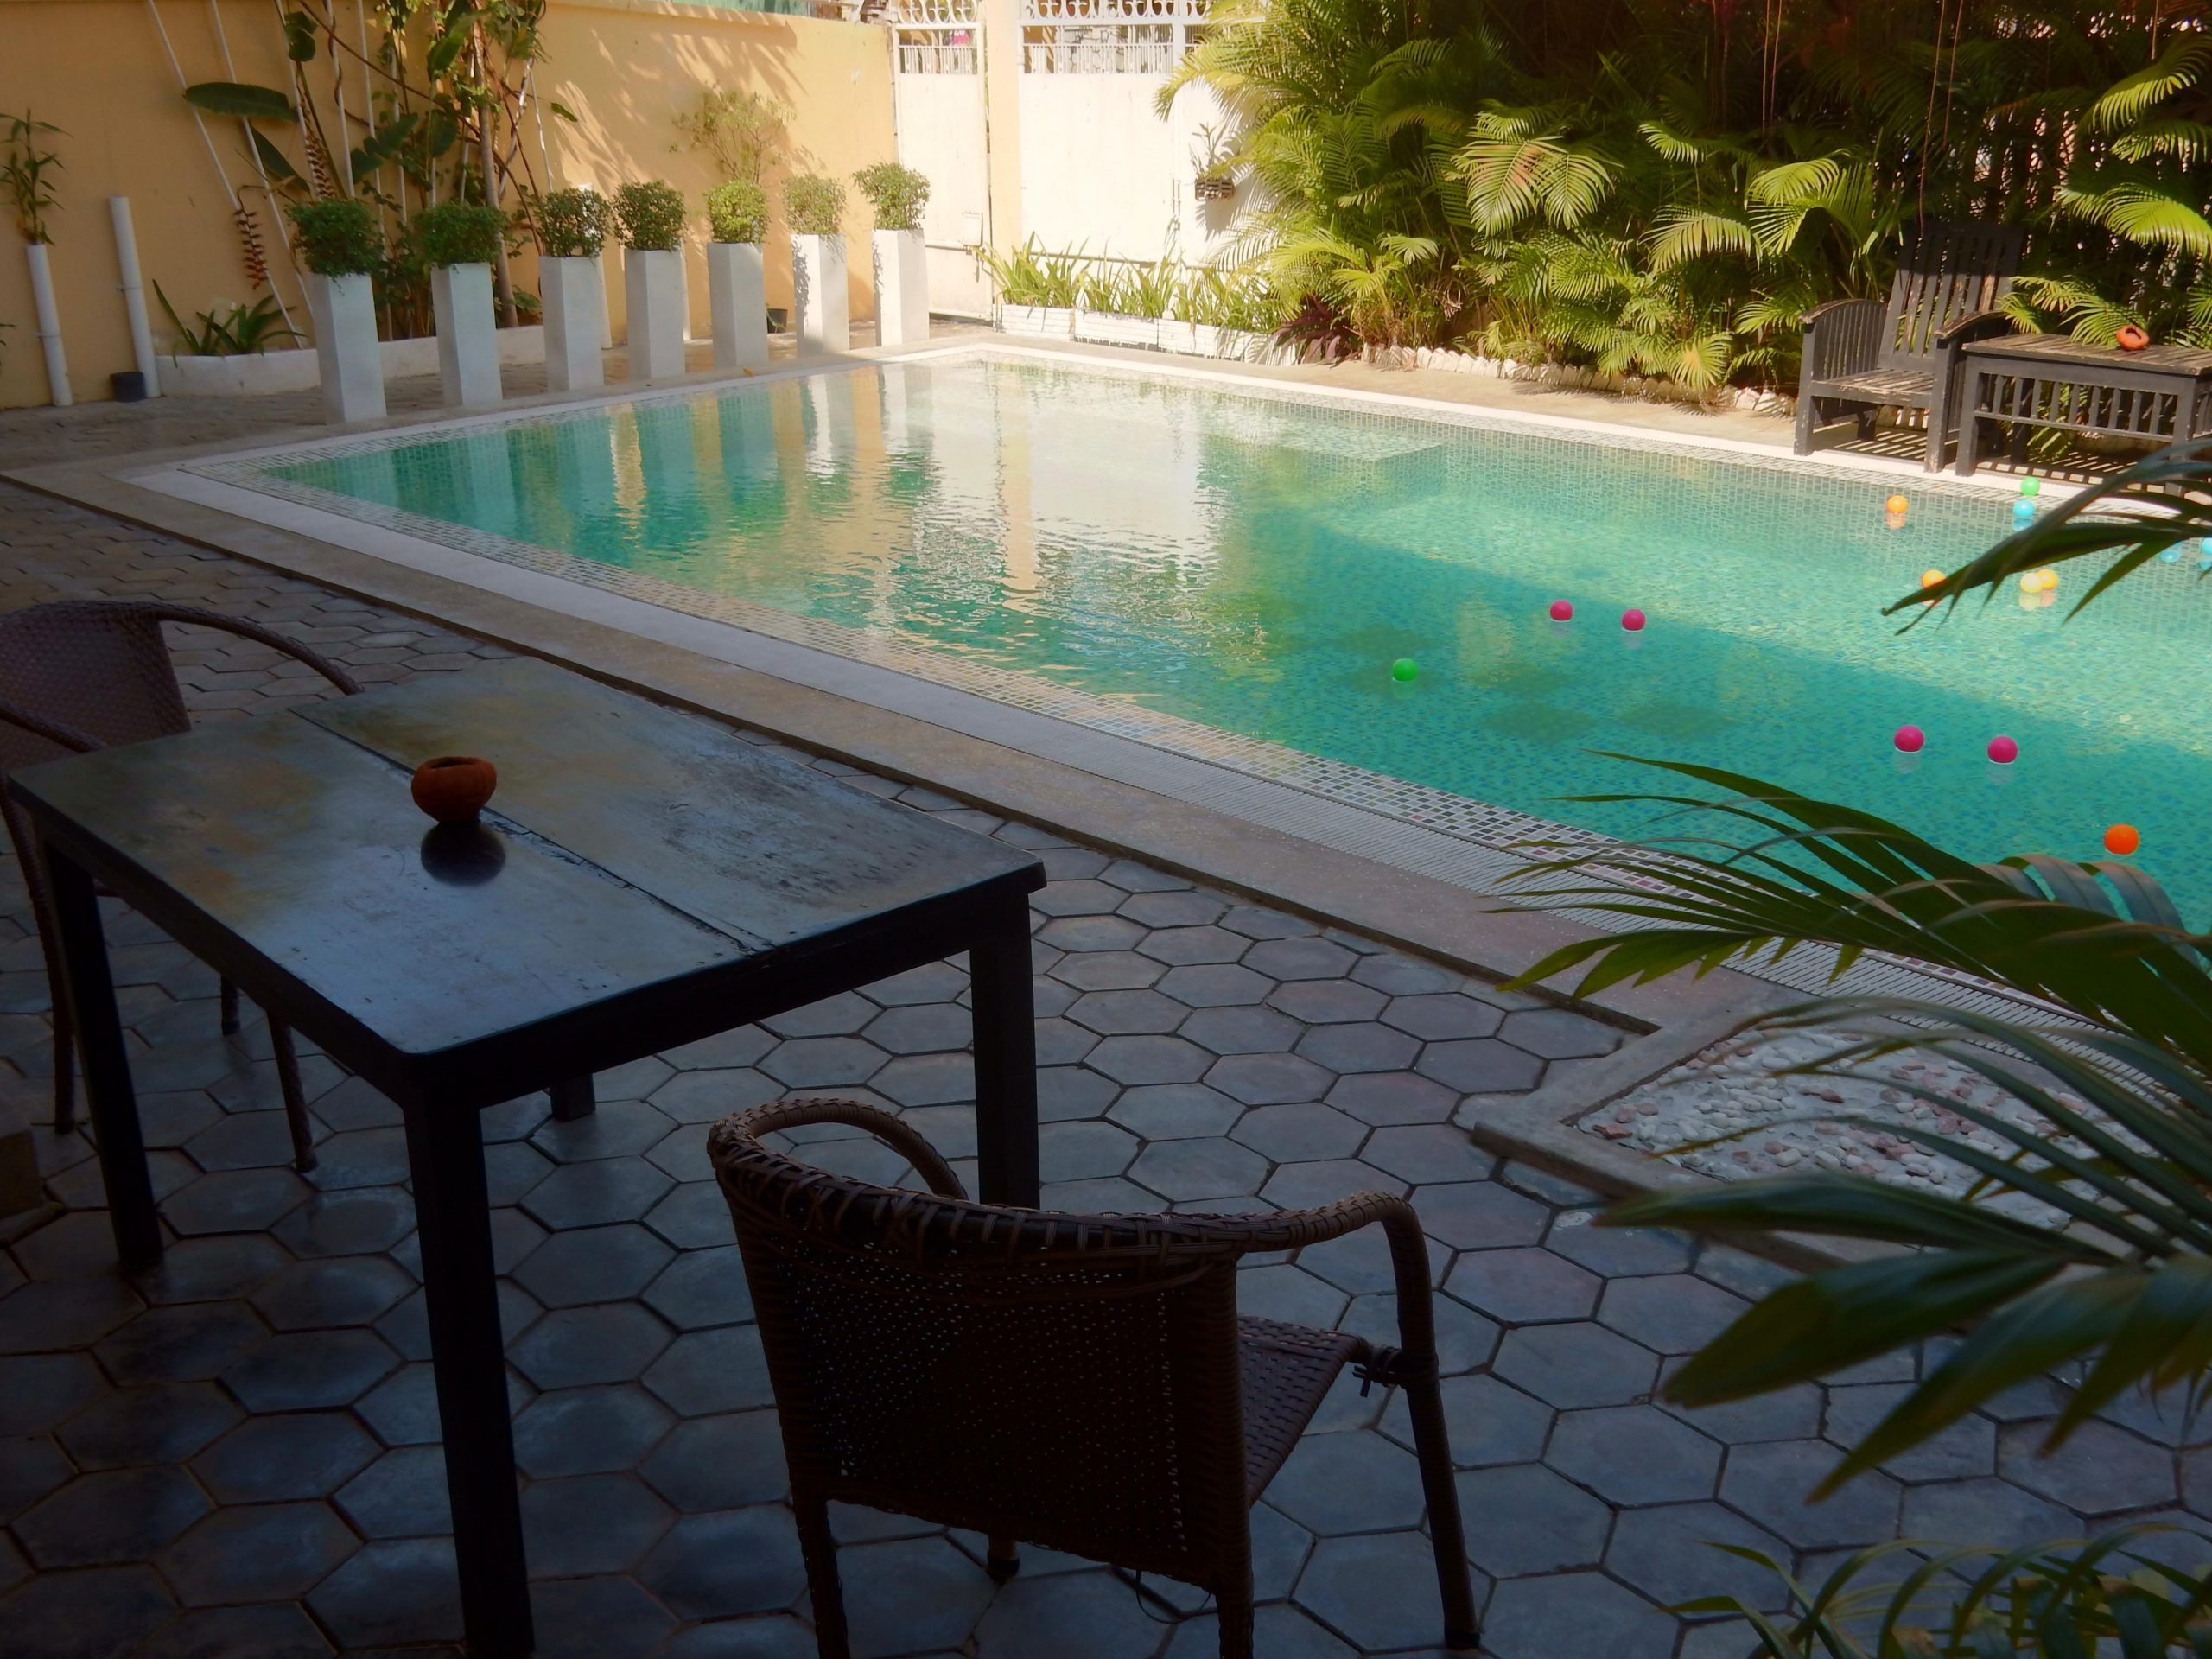 Royal Mekong Boutique Hotel pool chair